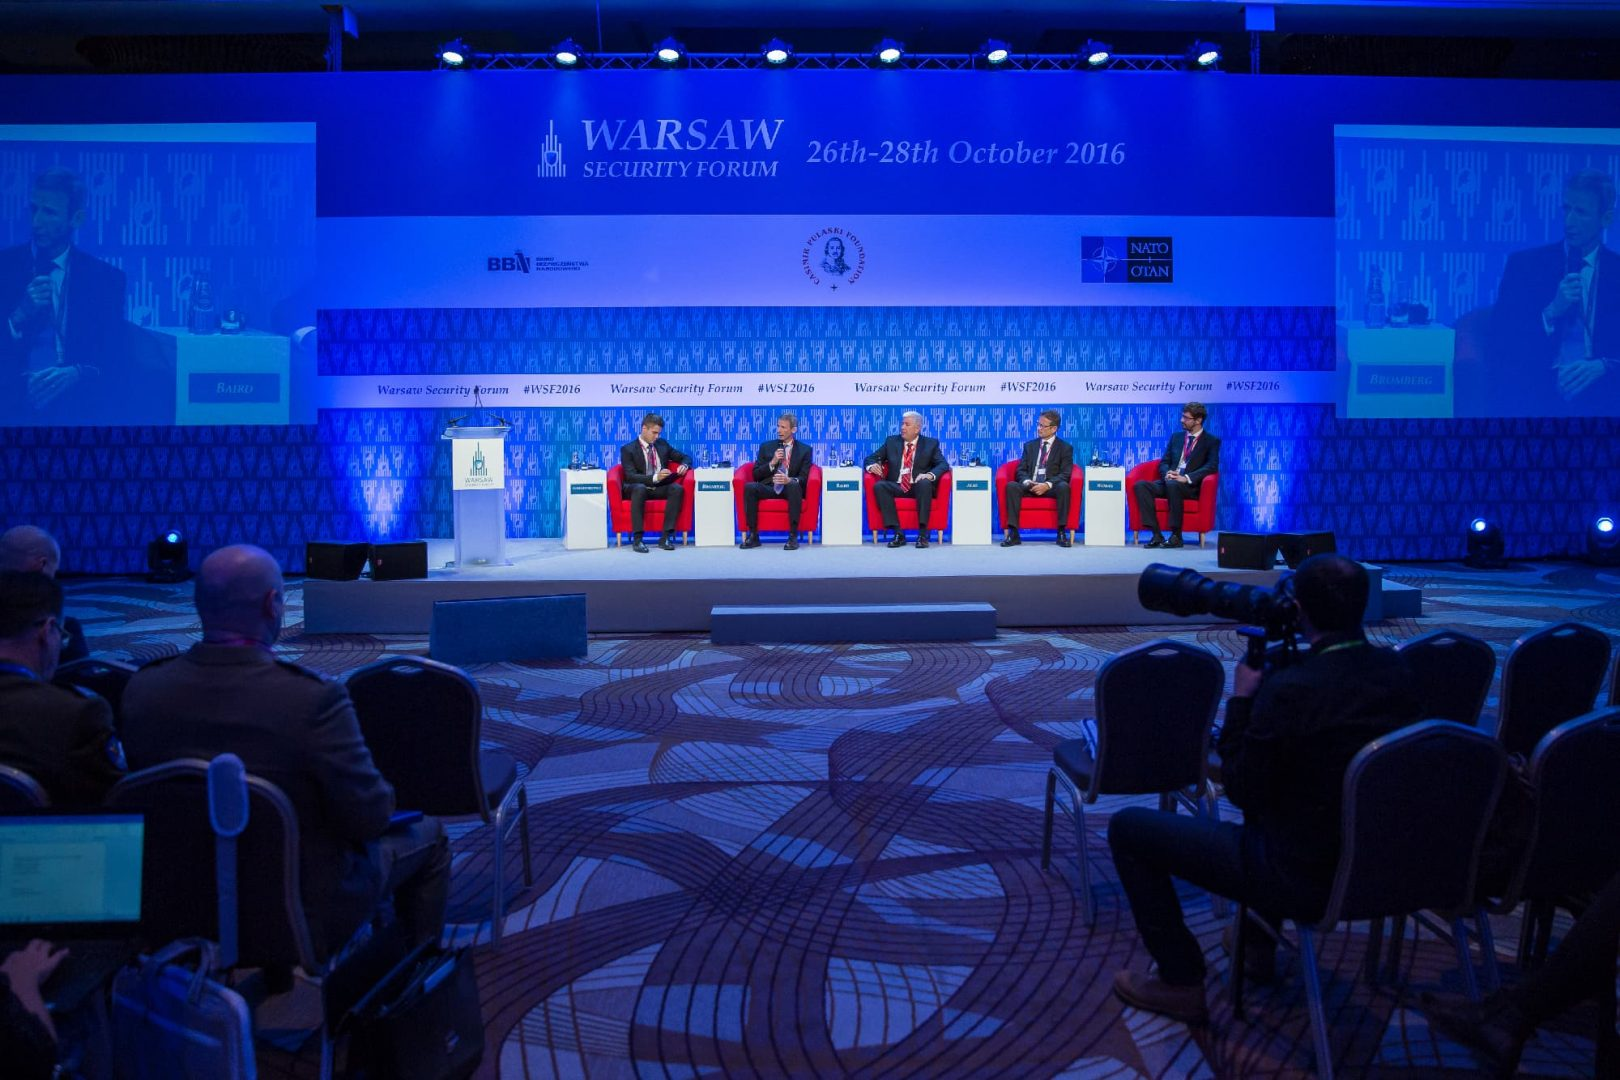 The Latest Military Technologies and Arms Industry at the Warsaw Security Forum 2016